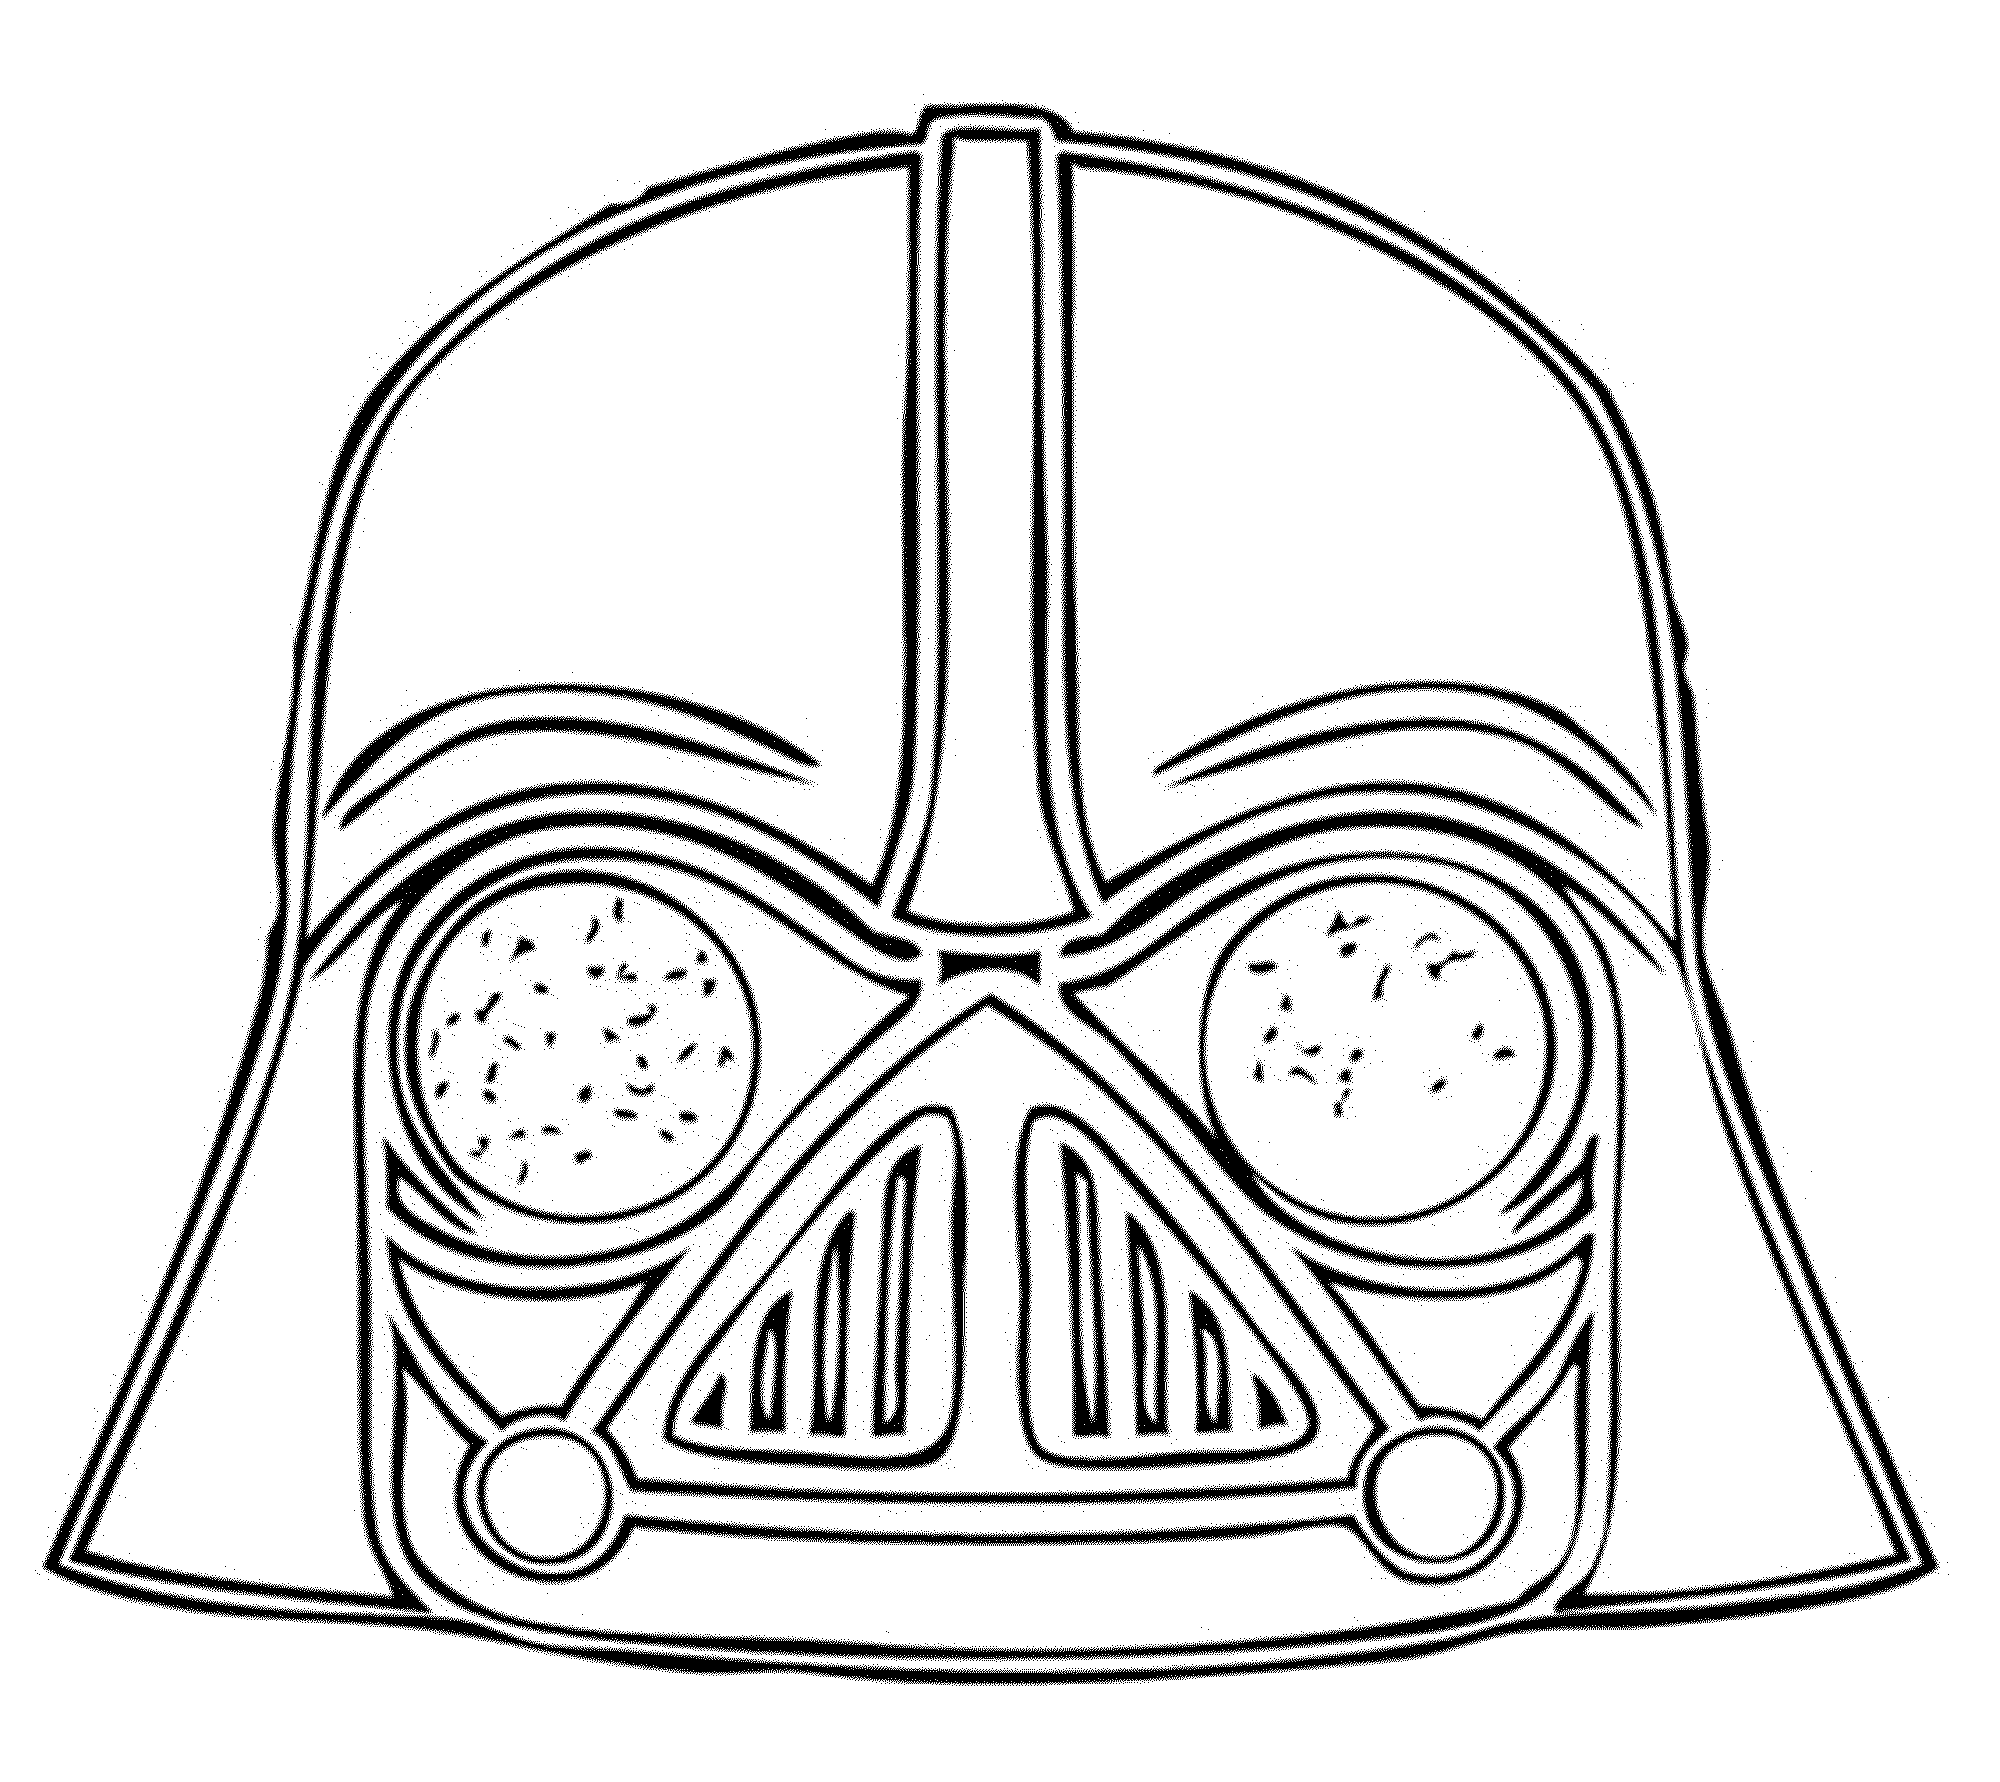 Star Wars Free Printable Coloring Pages Coloring Home